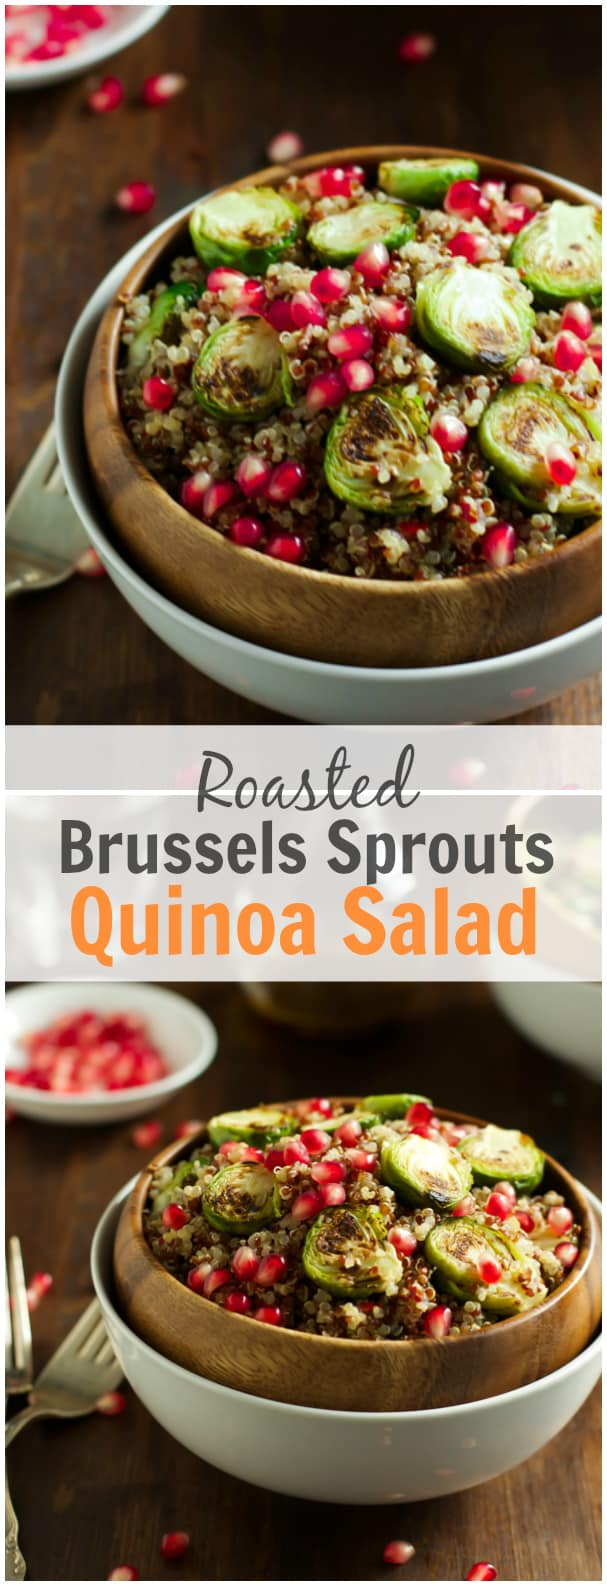 Roasted Brussels Sprouts Quinoa Salad